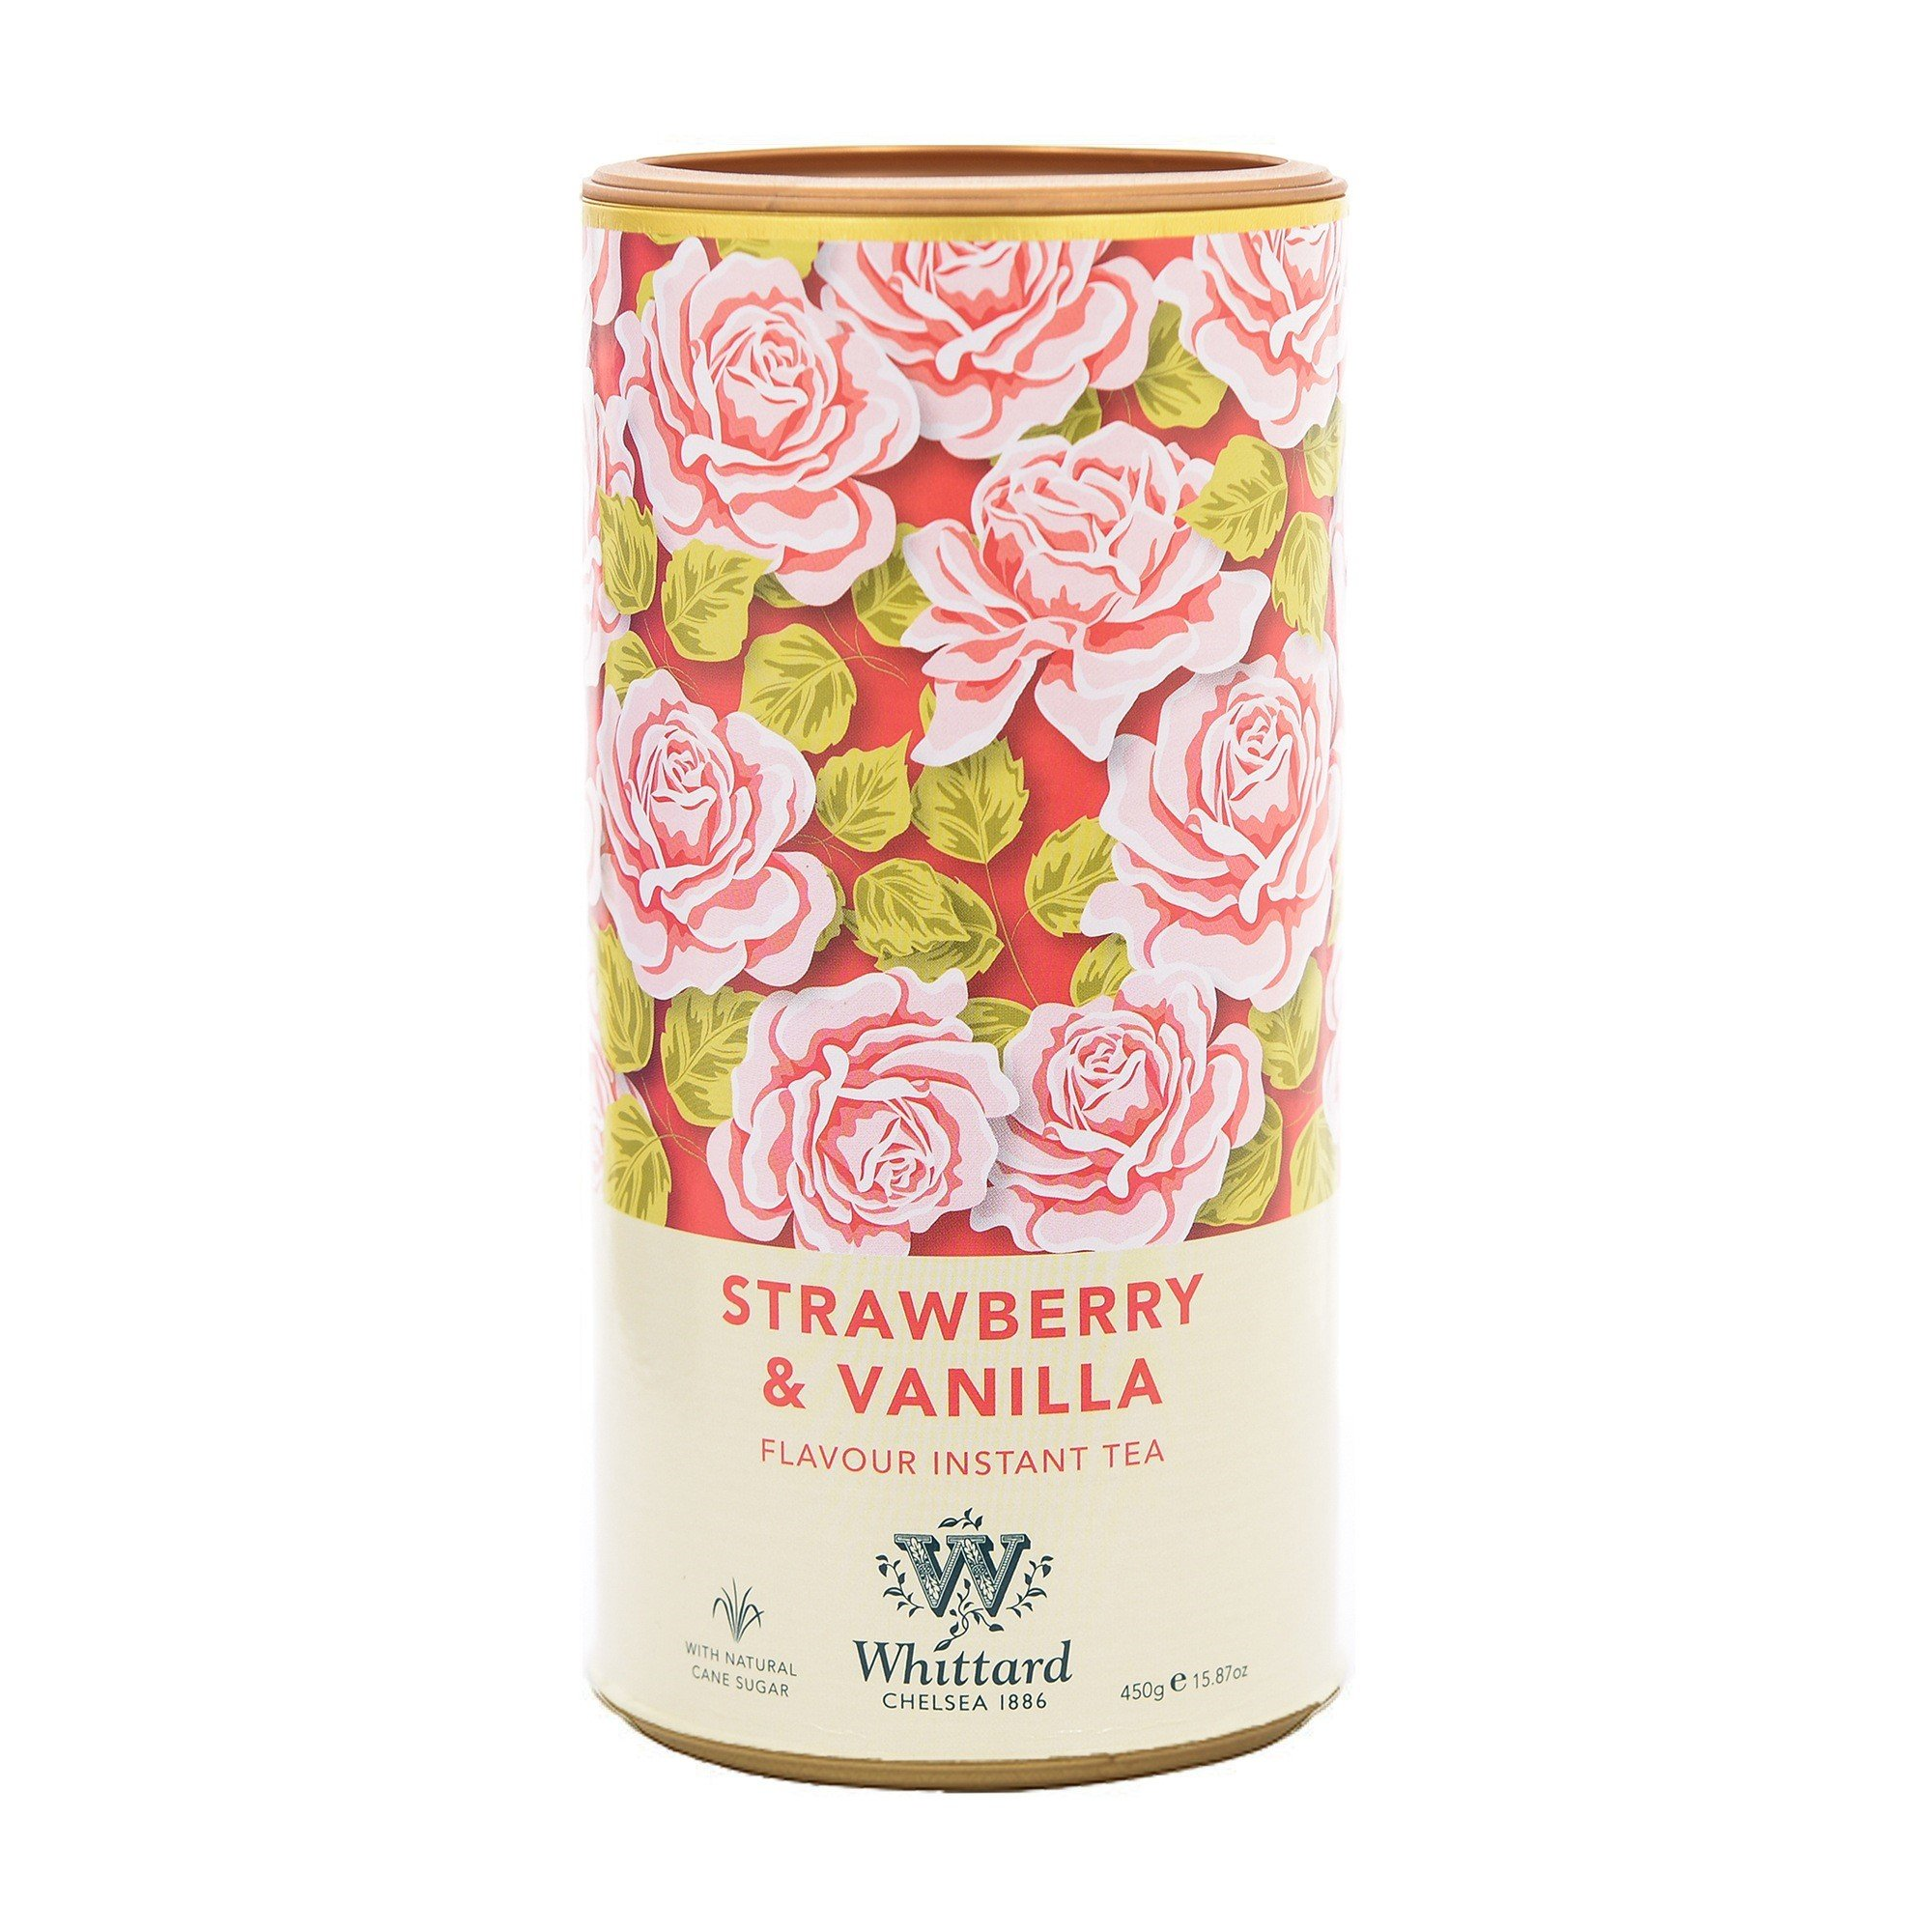 Whittard Strawberry & Vanilla Flavour Instant Tea 450g (Pack of 2)